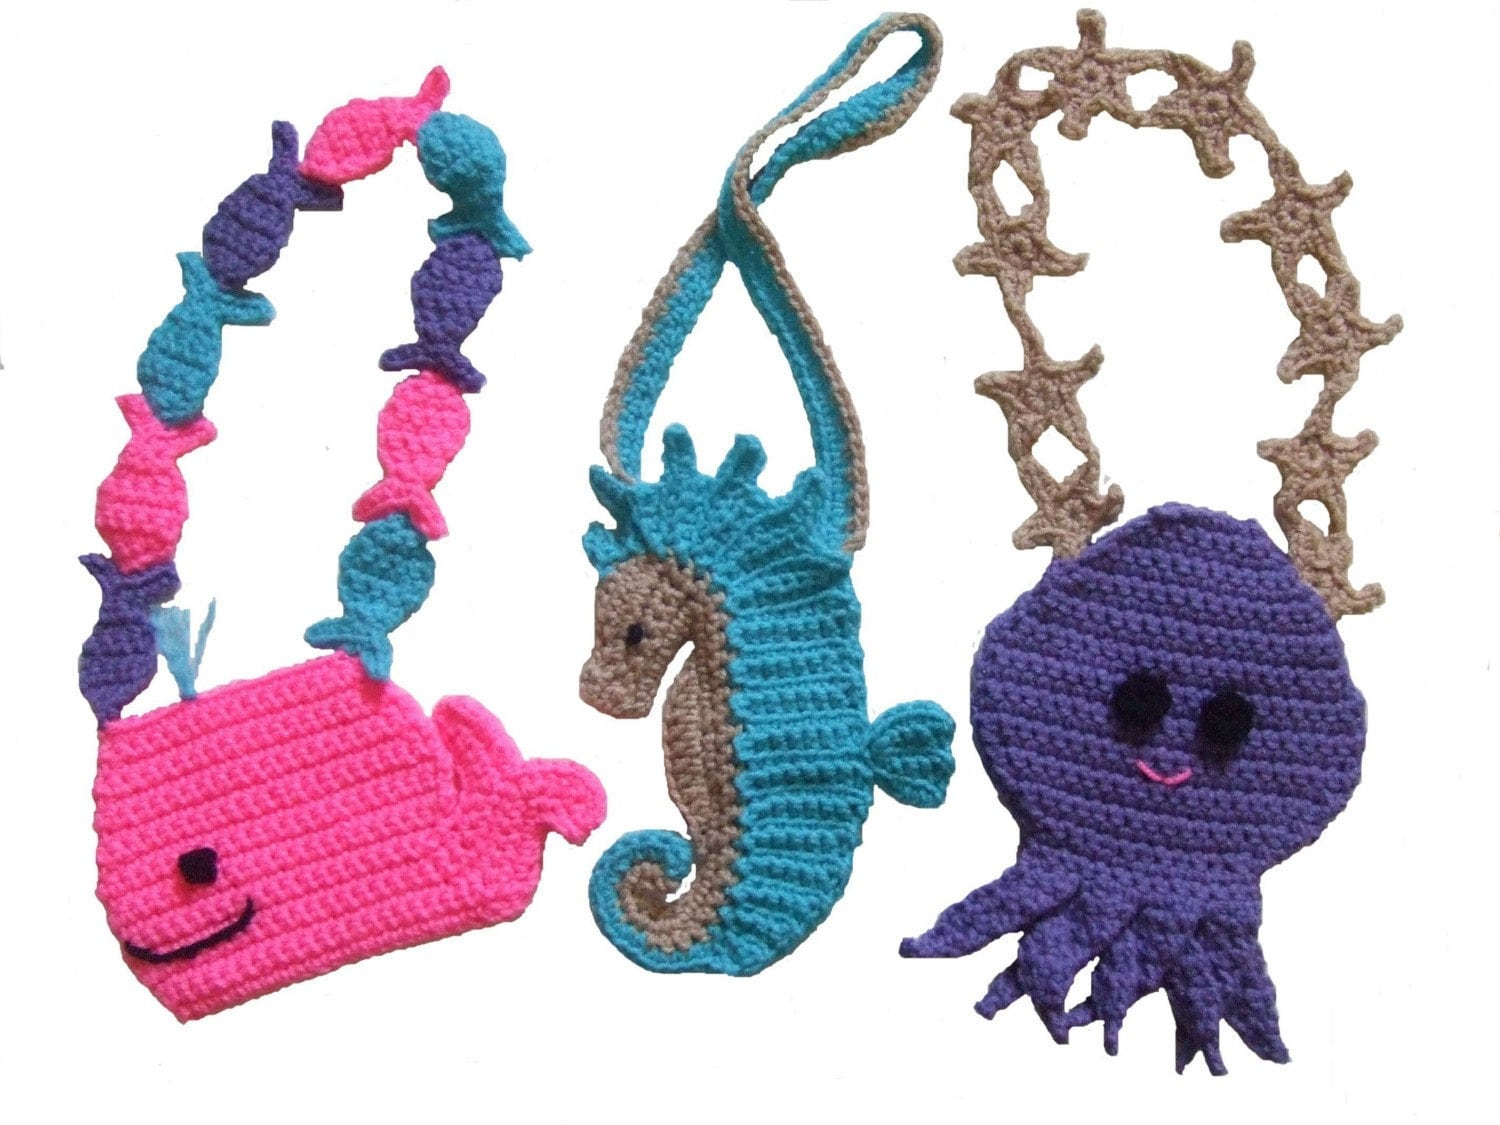 Purse Crochet Pattern, Ocean Friends Purses, Digital Download - CrochetVillage